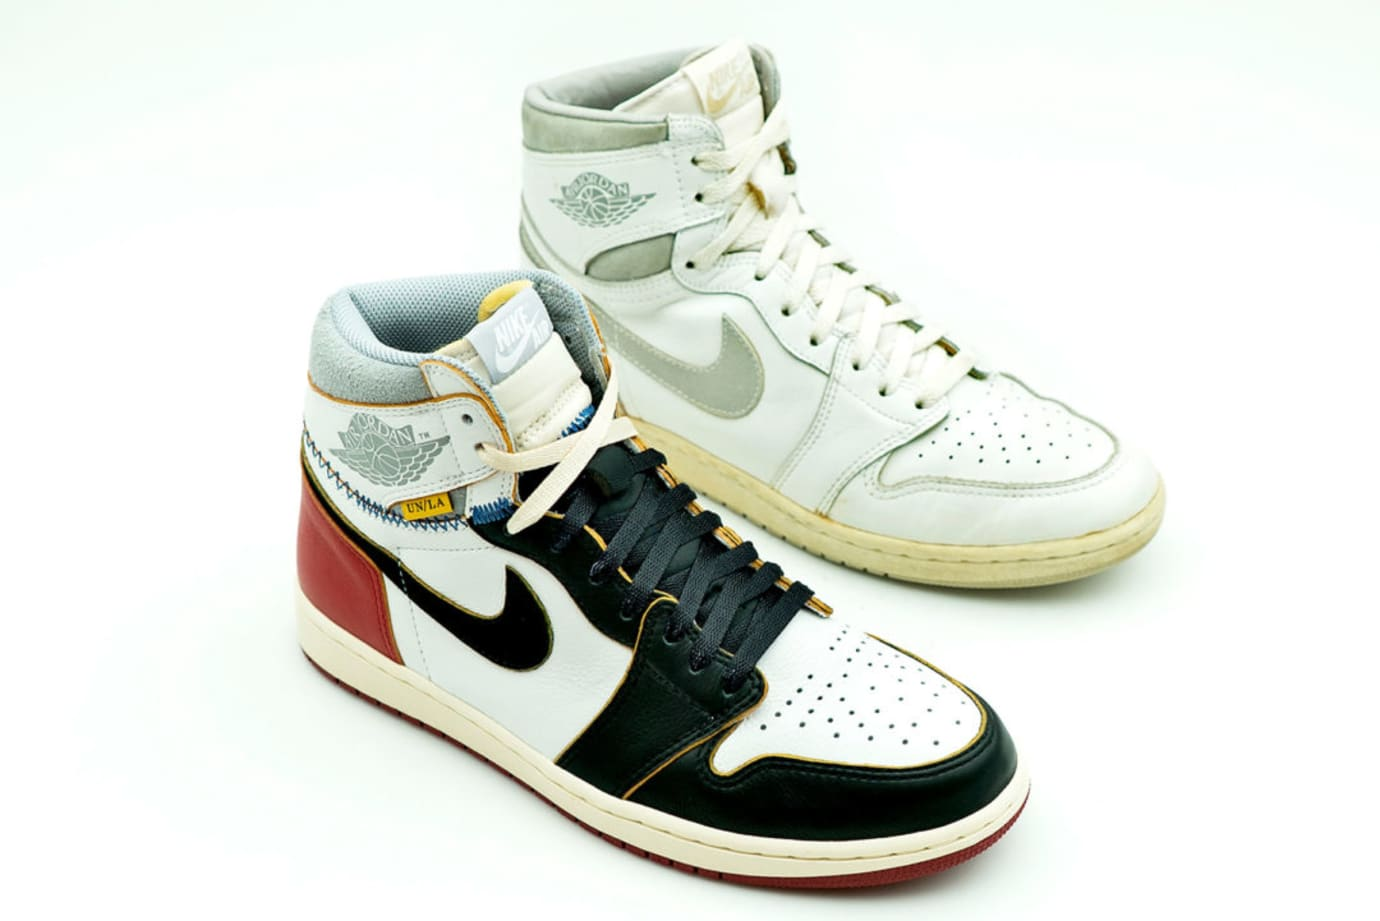 Union x Air Jordan 1 Comparison (vs. 'White/Natural Grey' Lateral)